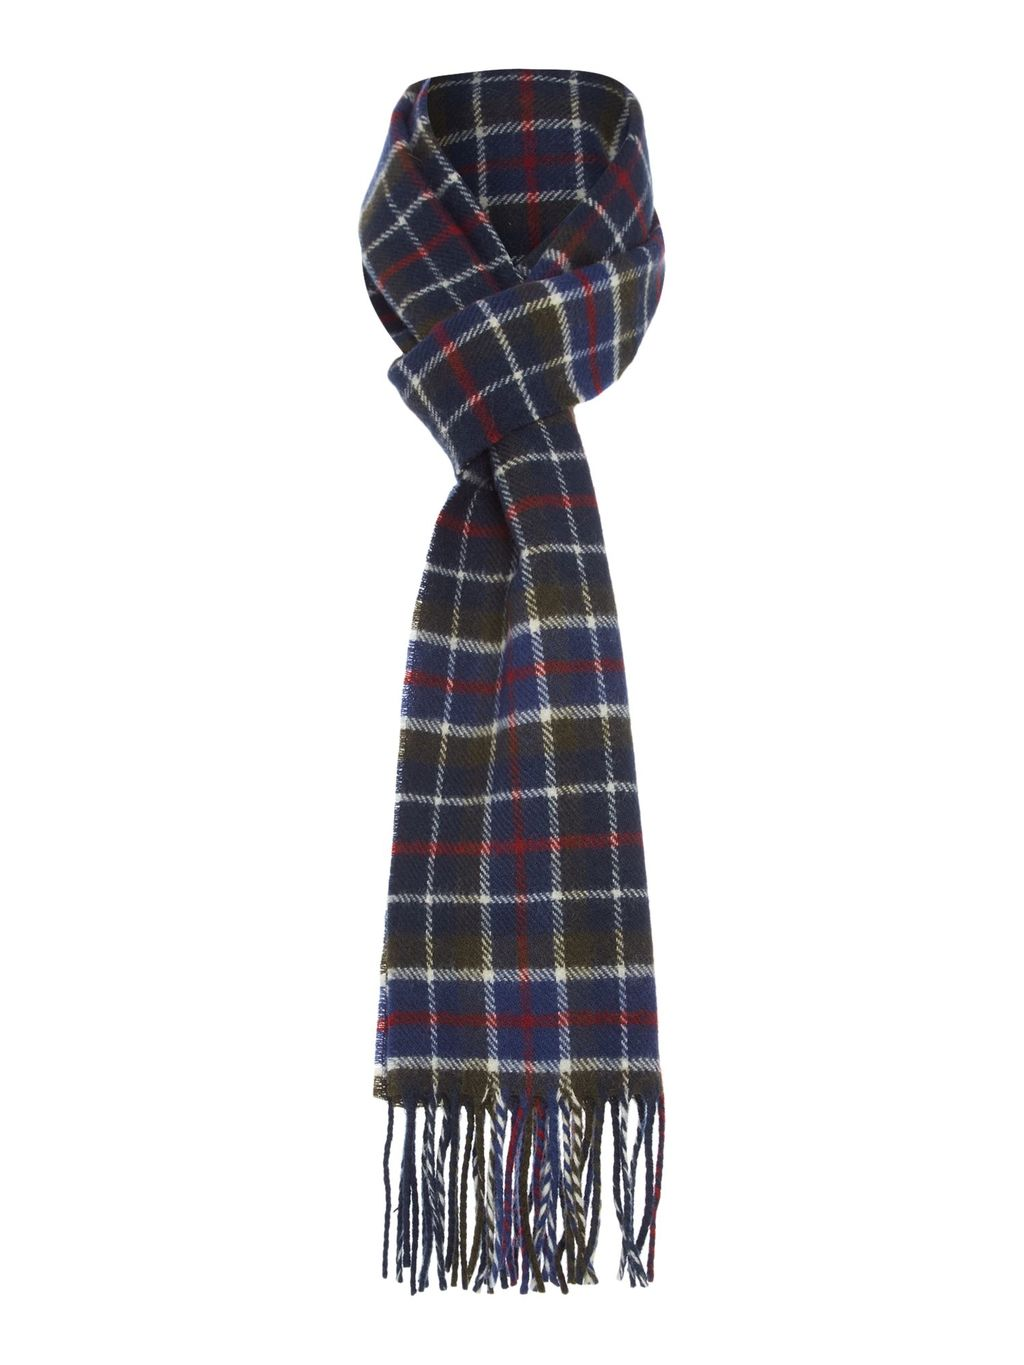 Racing Check Scarf, Multi Coloured - predominant colour: navy; occasions: casual, creative work; type of pattern: standard; style: regular; size: standard; material: fabric; pattern: checked/gingham; secondary colour: raspberry; season: s/s 2016; wardrobe: highlight